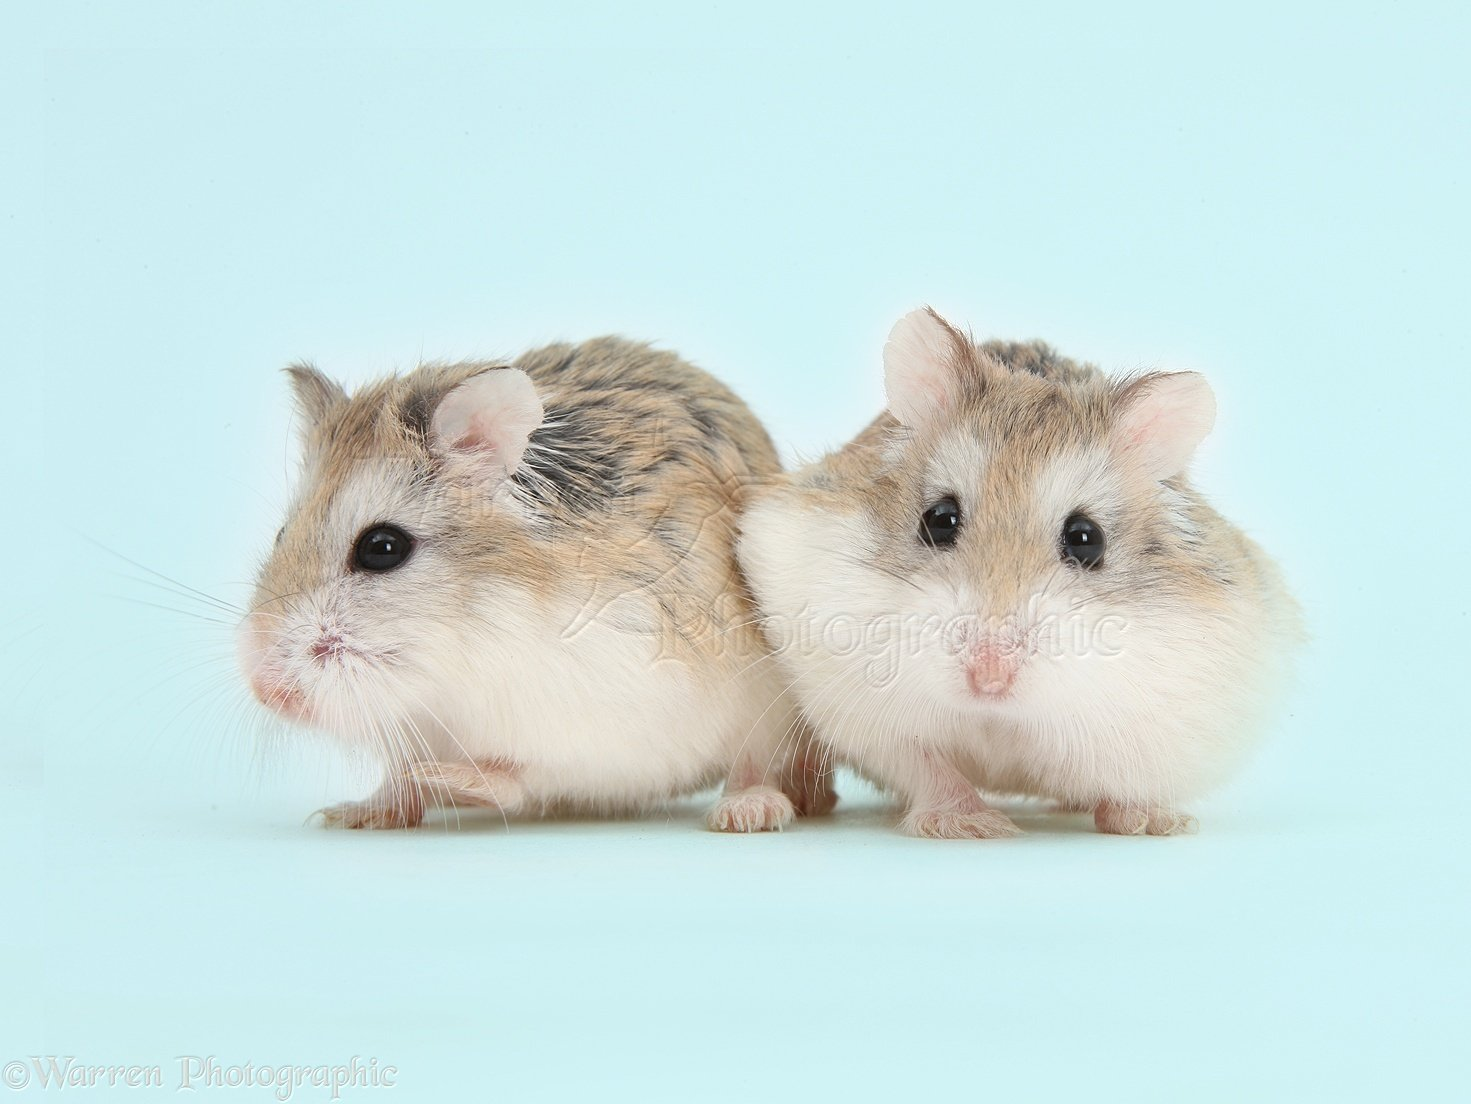 Roborovski Hamsters on blue background photo WP41652 1471x1104